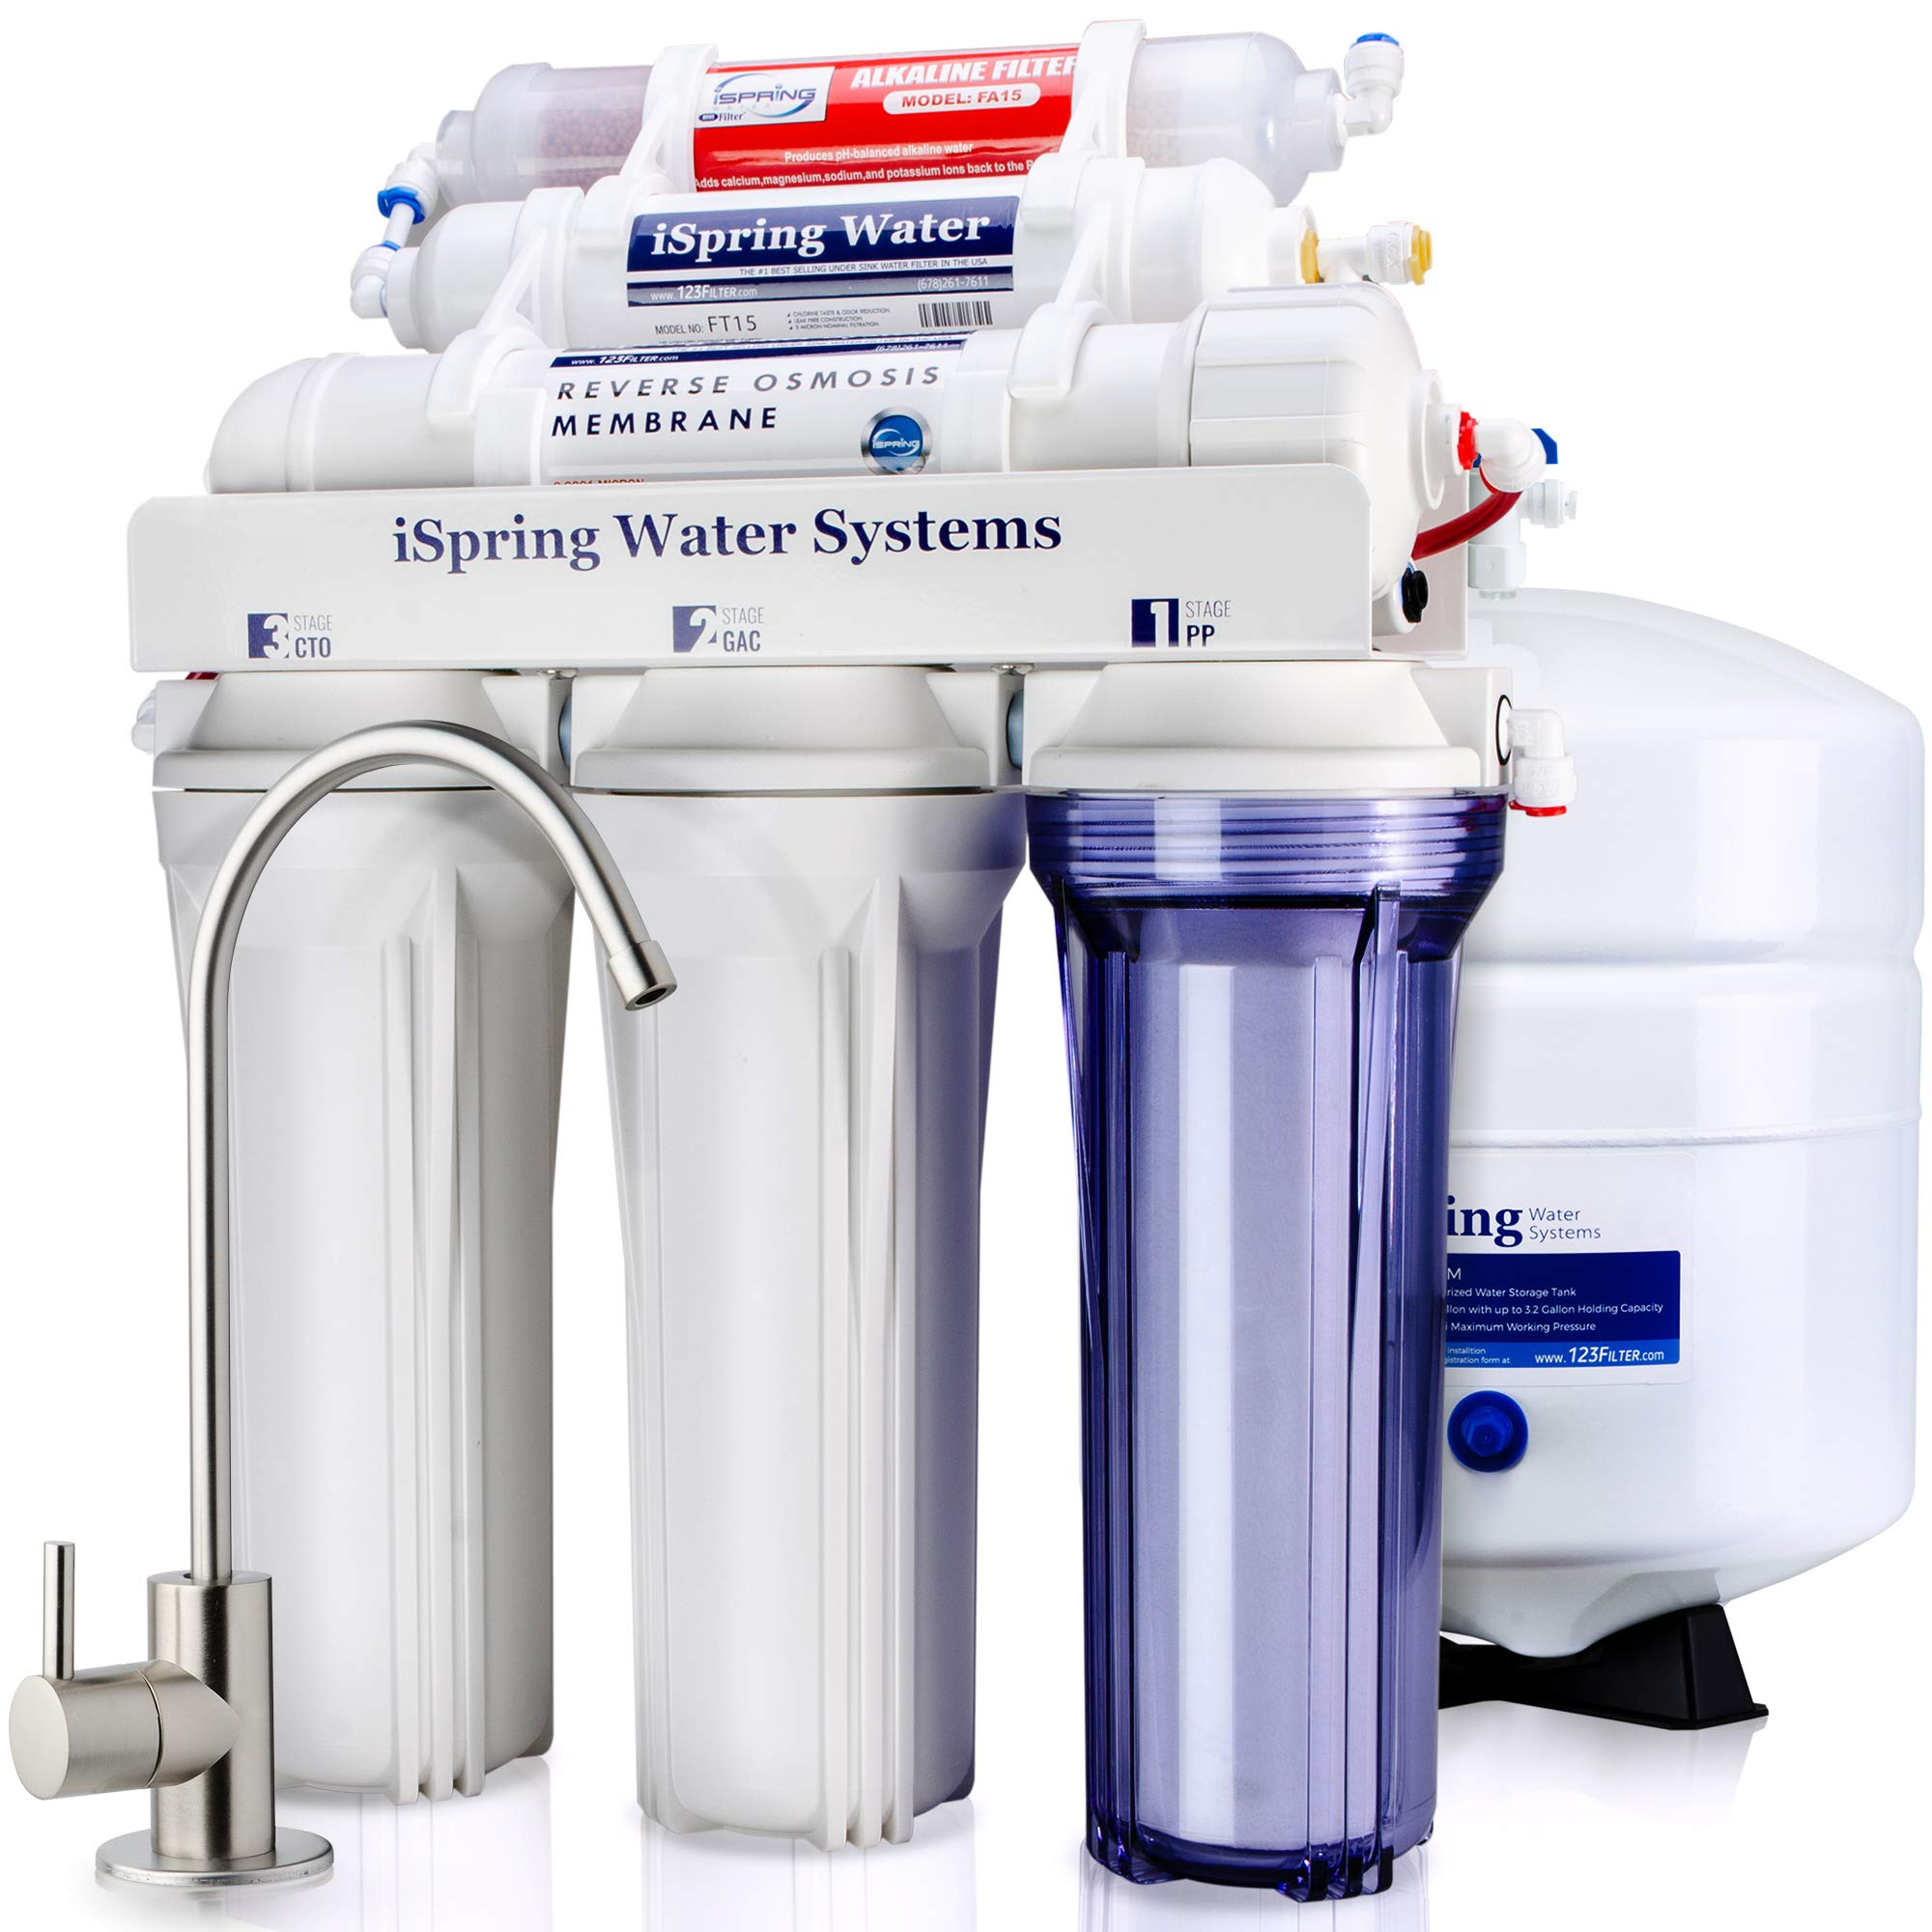 iSpring RCC7AK 6-Stage Superb Taste High Capacity Under Under Sink Reverse Osmosis Drinking Water Filter System with Alkaline Remineralization - Natural pH, White by iSpring